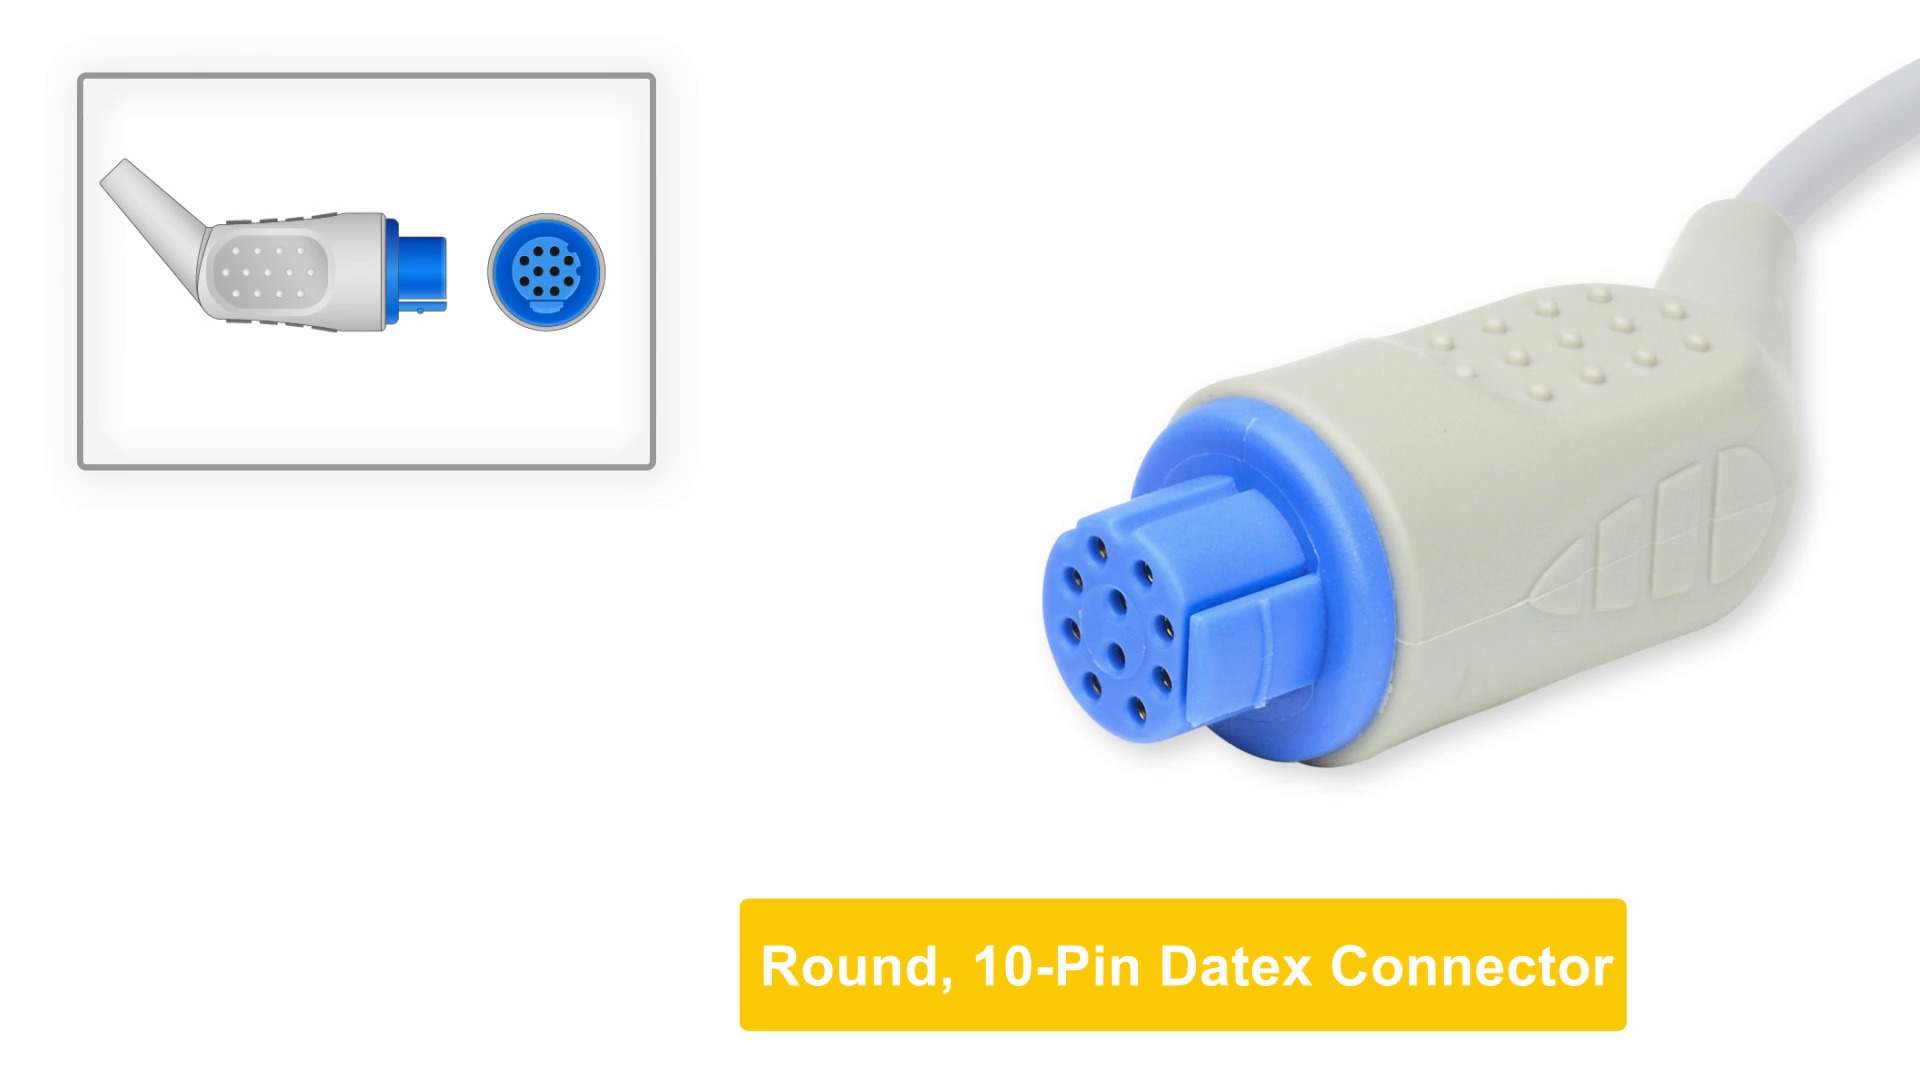 Datex Ohmeda Compatible Direct-Connect ECG Cable 3 Leads Snap